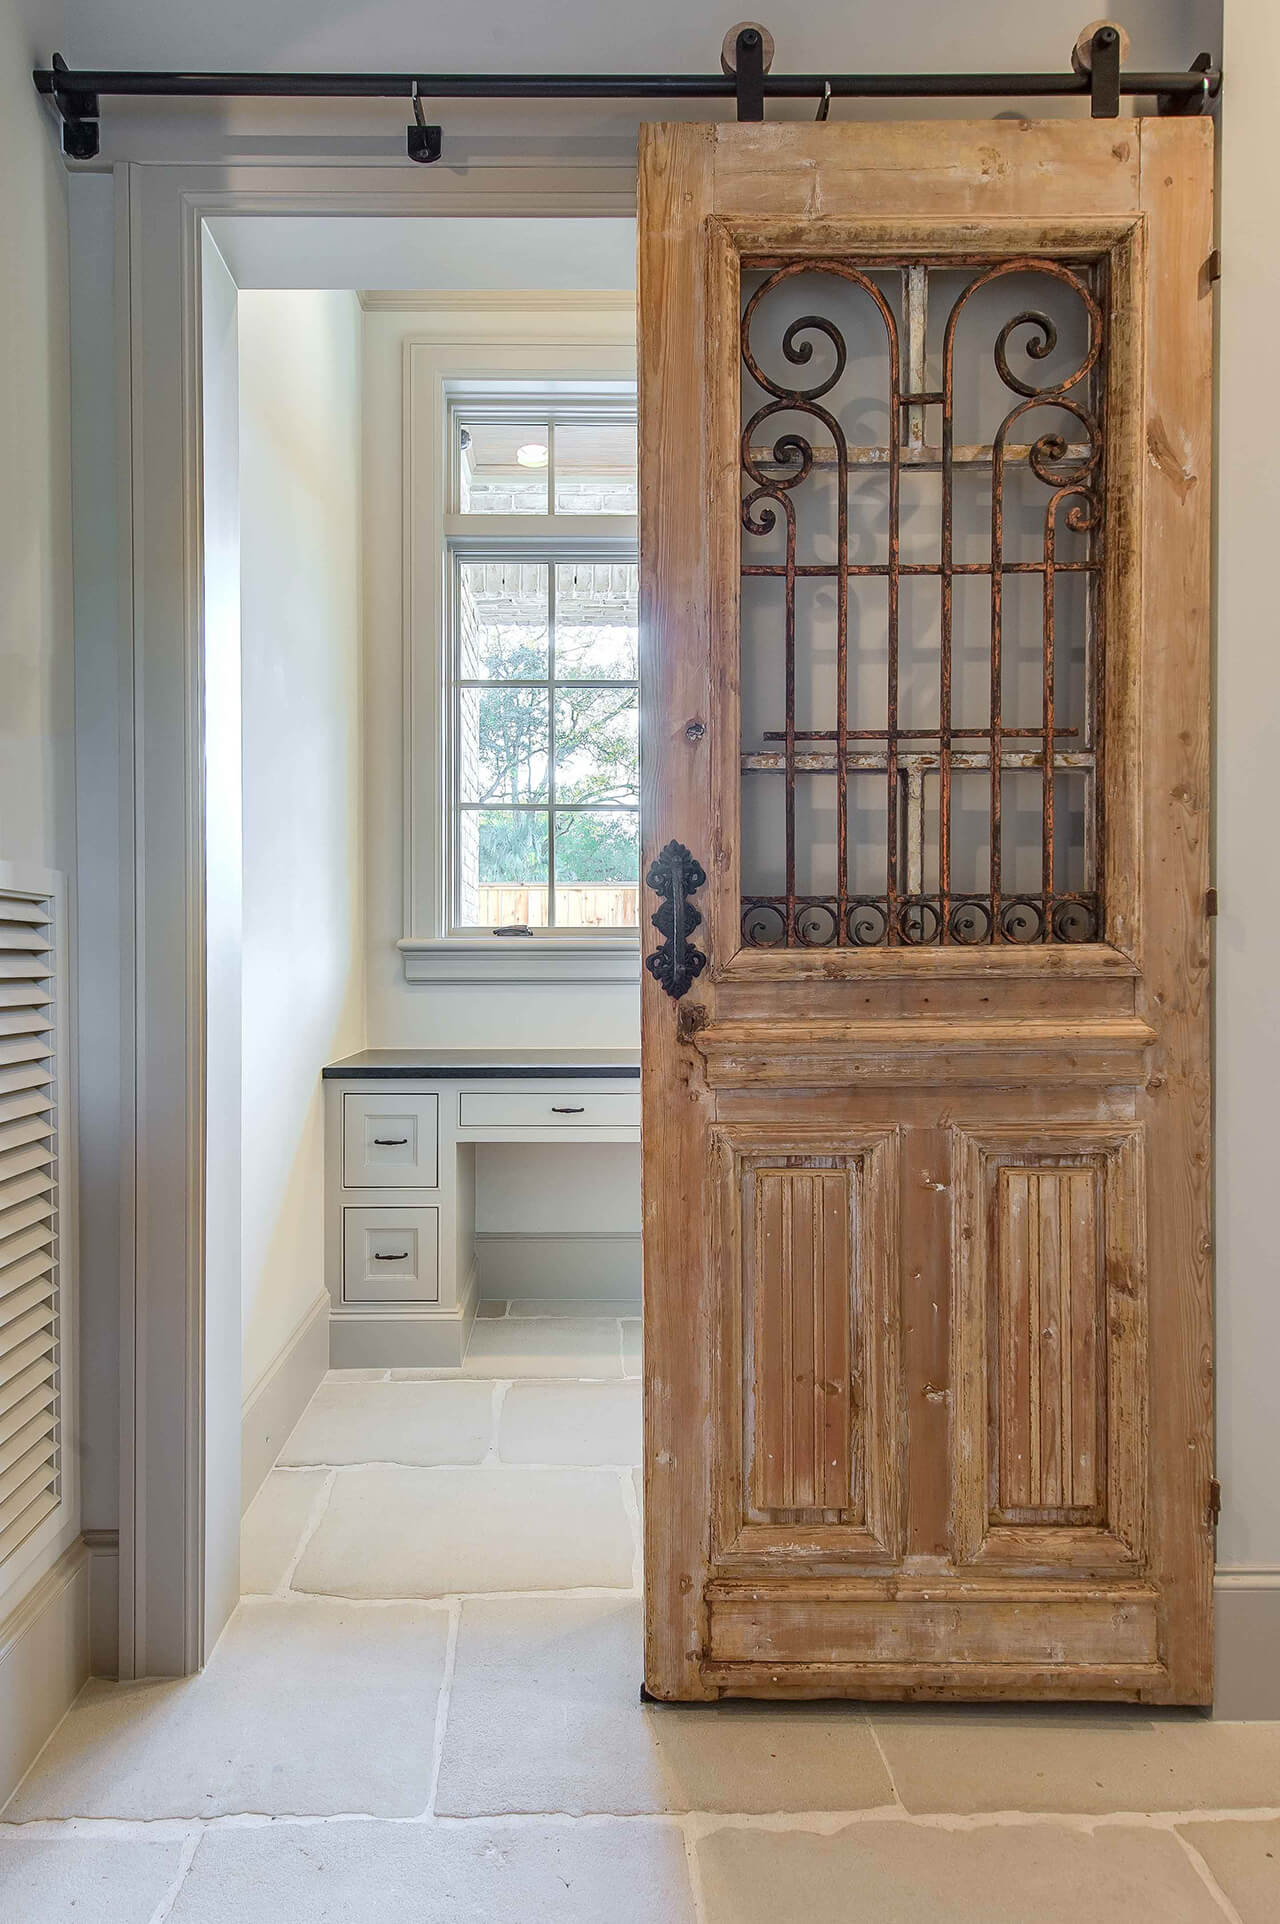 New takes on old doors 21 ideas how to repurpose old Vintage interior